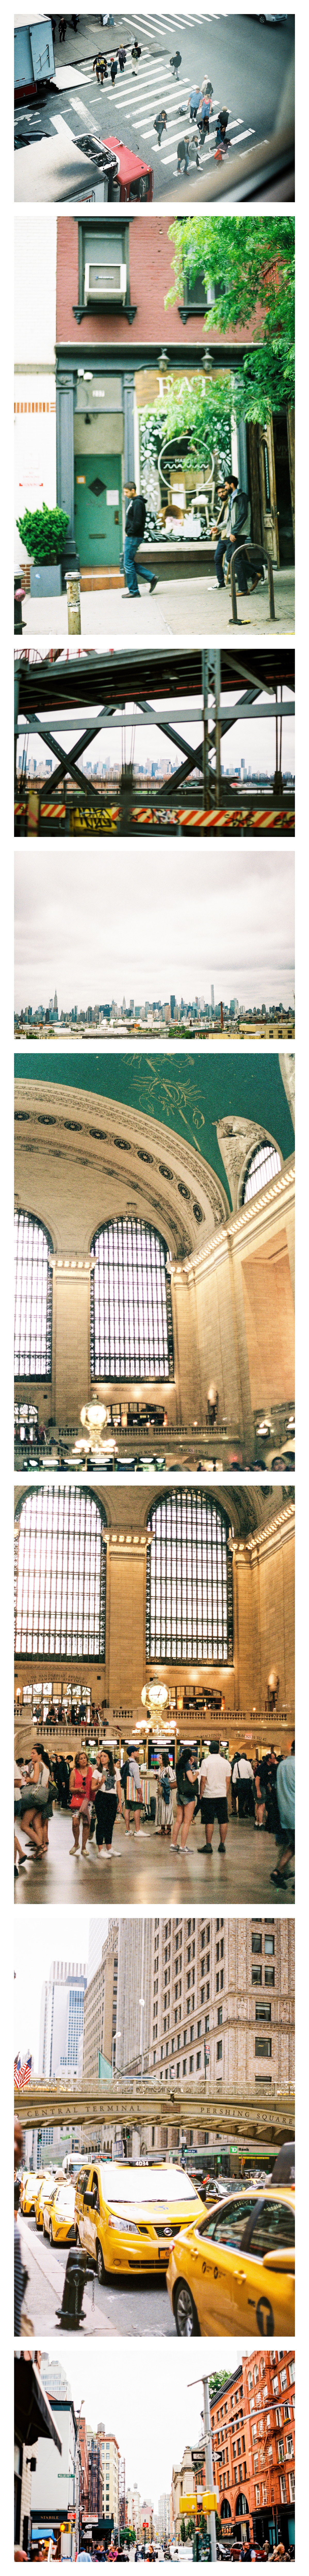 grand-central-station-nyc-travel-photographer-photos